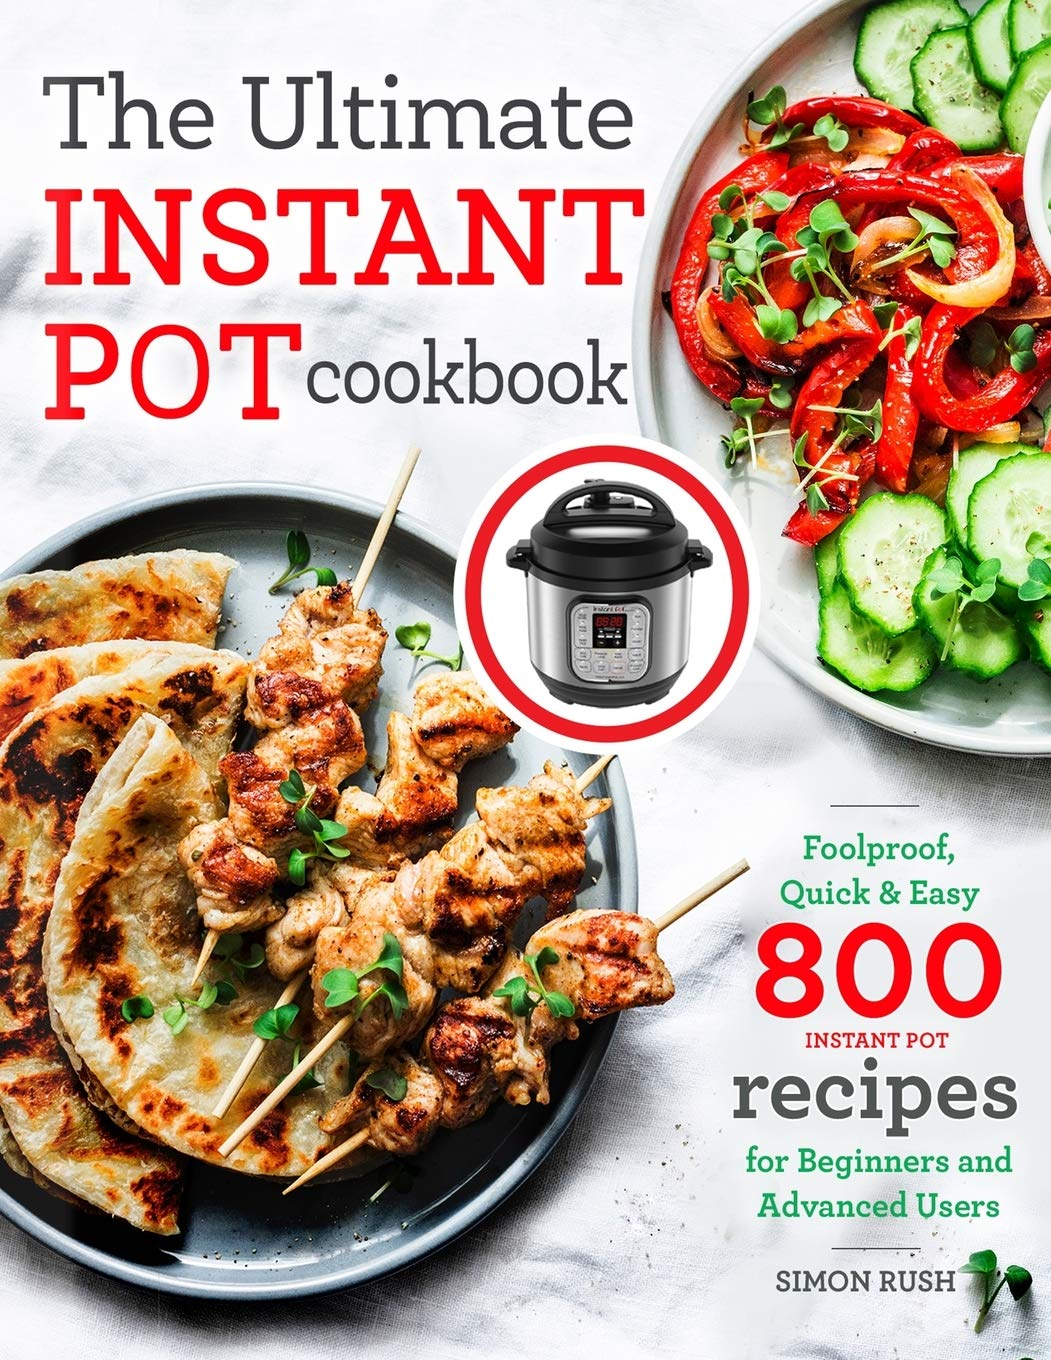 The Ultimate Instant Pot cookbook: Foolproof, Quick & Easy 800 Instant Pot Recipes for Beginners and Advanced Users (Pressure Cooker Recipes) - Tolerant Planet